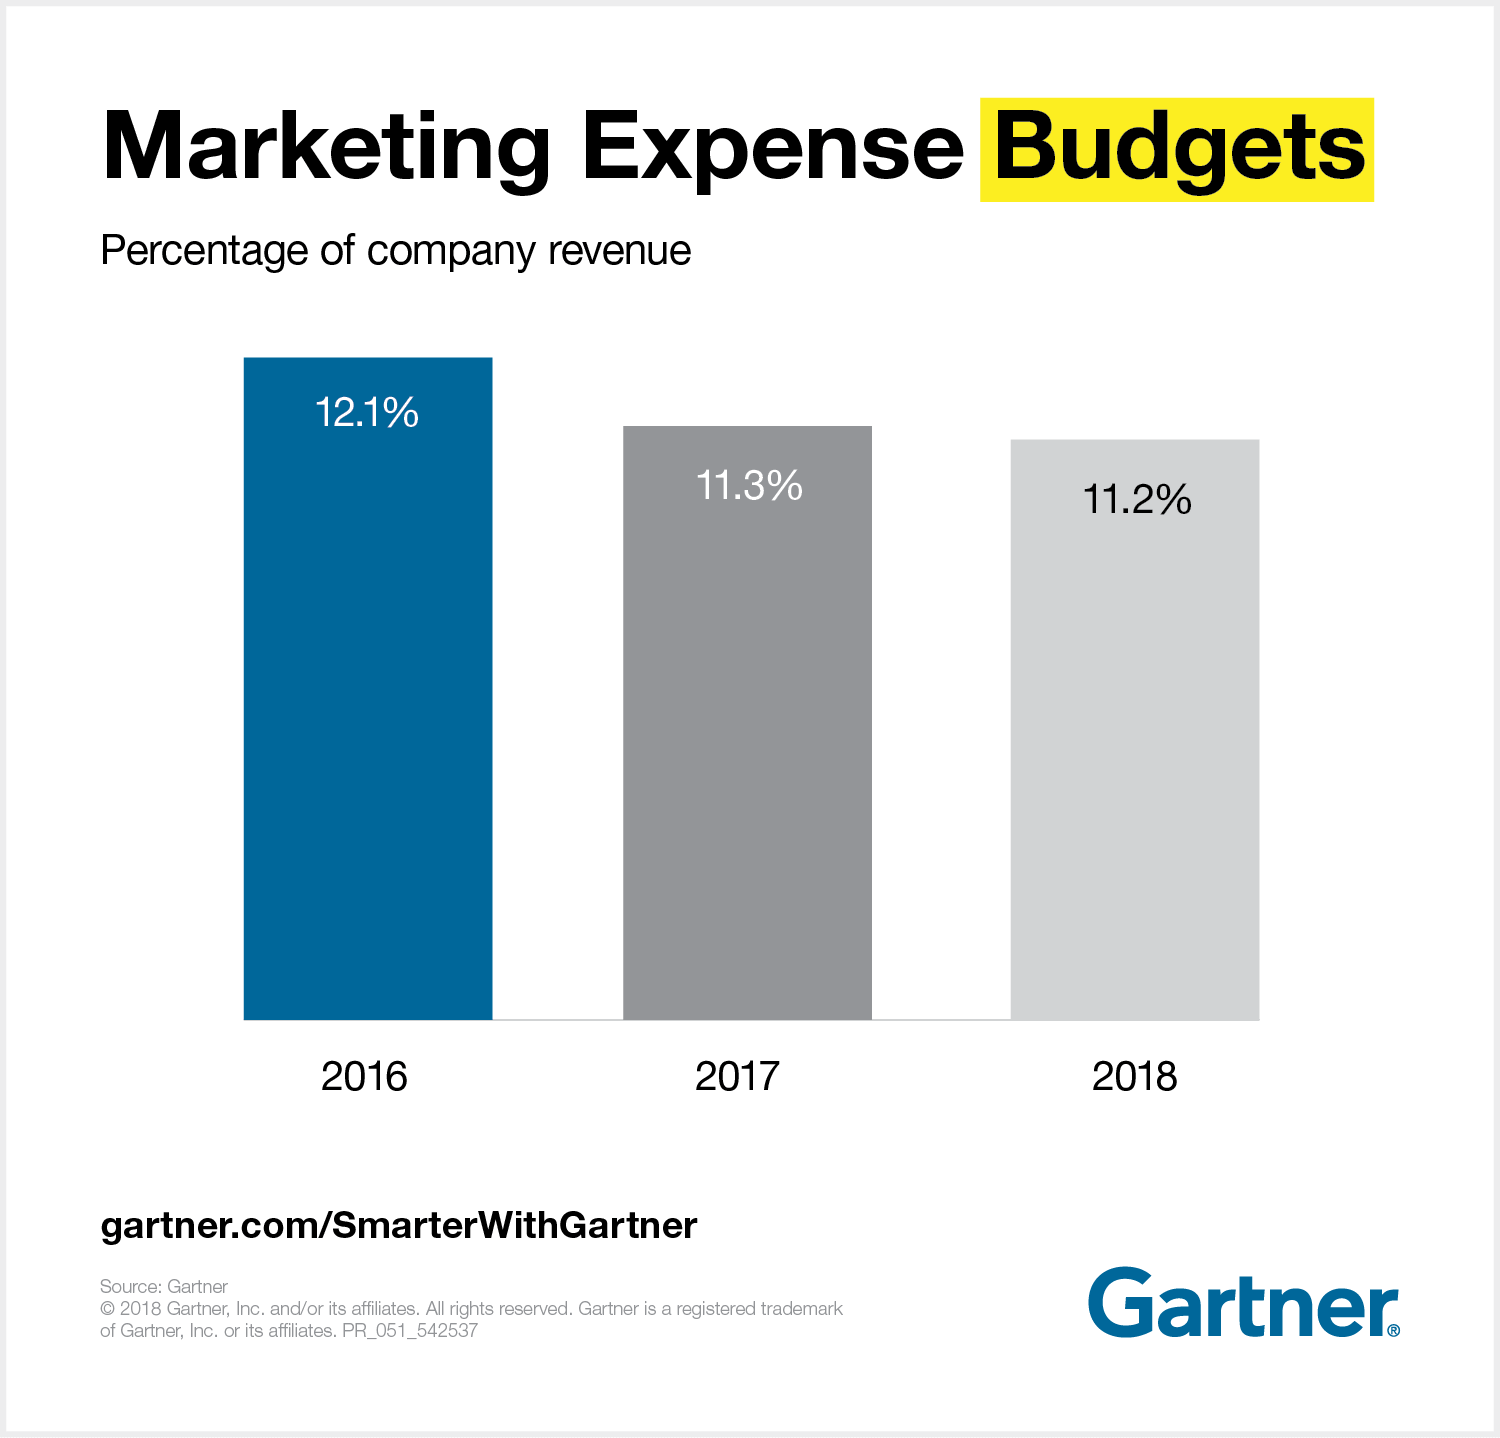 Percentage of company revenue for marketing expense budgets.